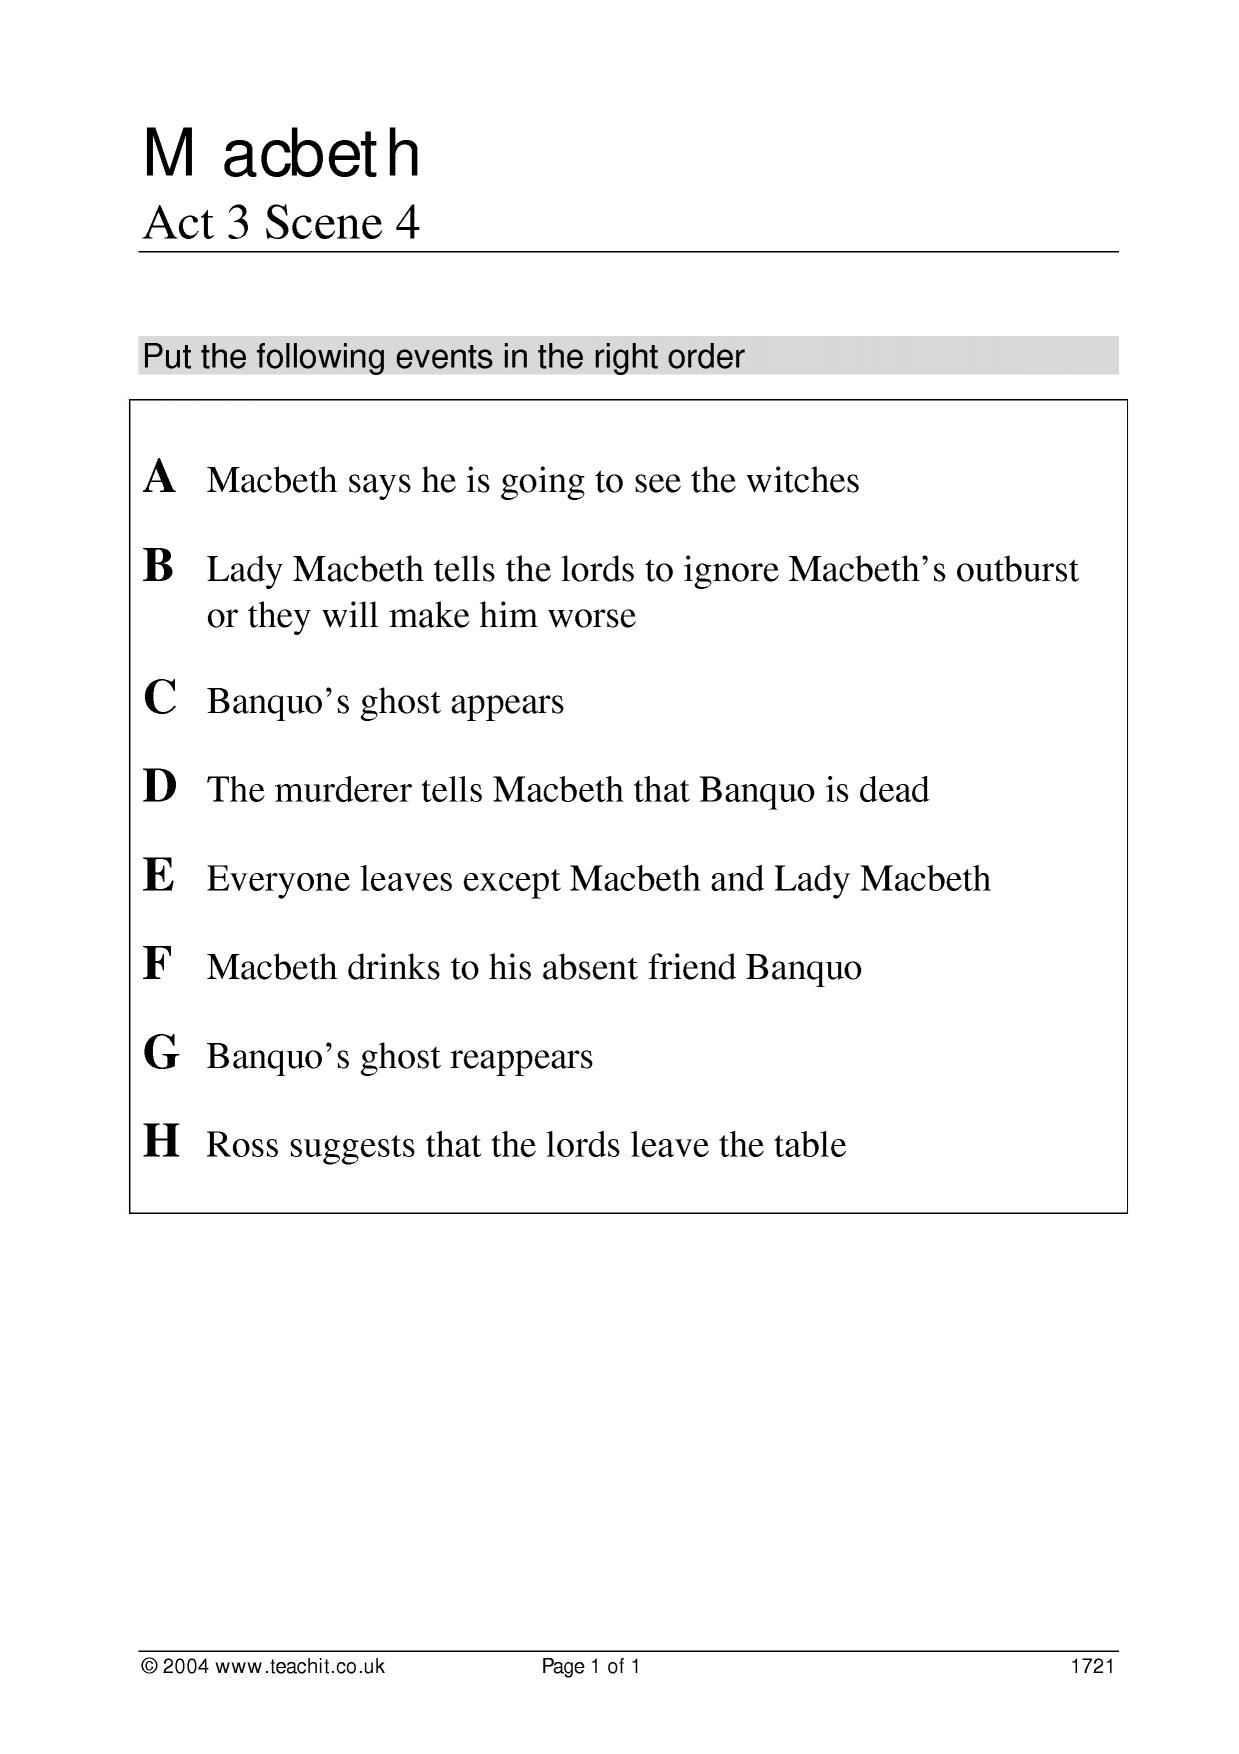 how does shakespeare present lady macbeth in act 1 scene 5 and act 1 scene 7 essay The effect of the letter (act 1, scene 5) how does lady macbeth react to the letter from macbeth lady macbeth's reaction when she reads her husband's letter is.